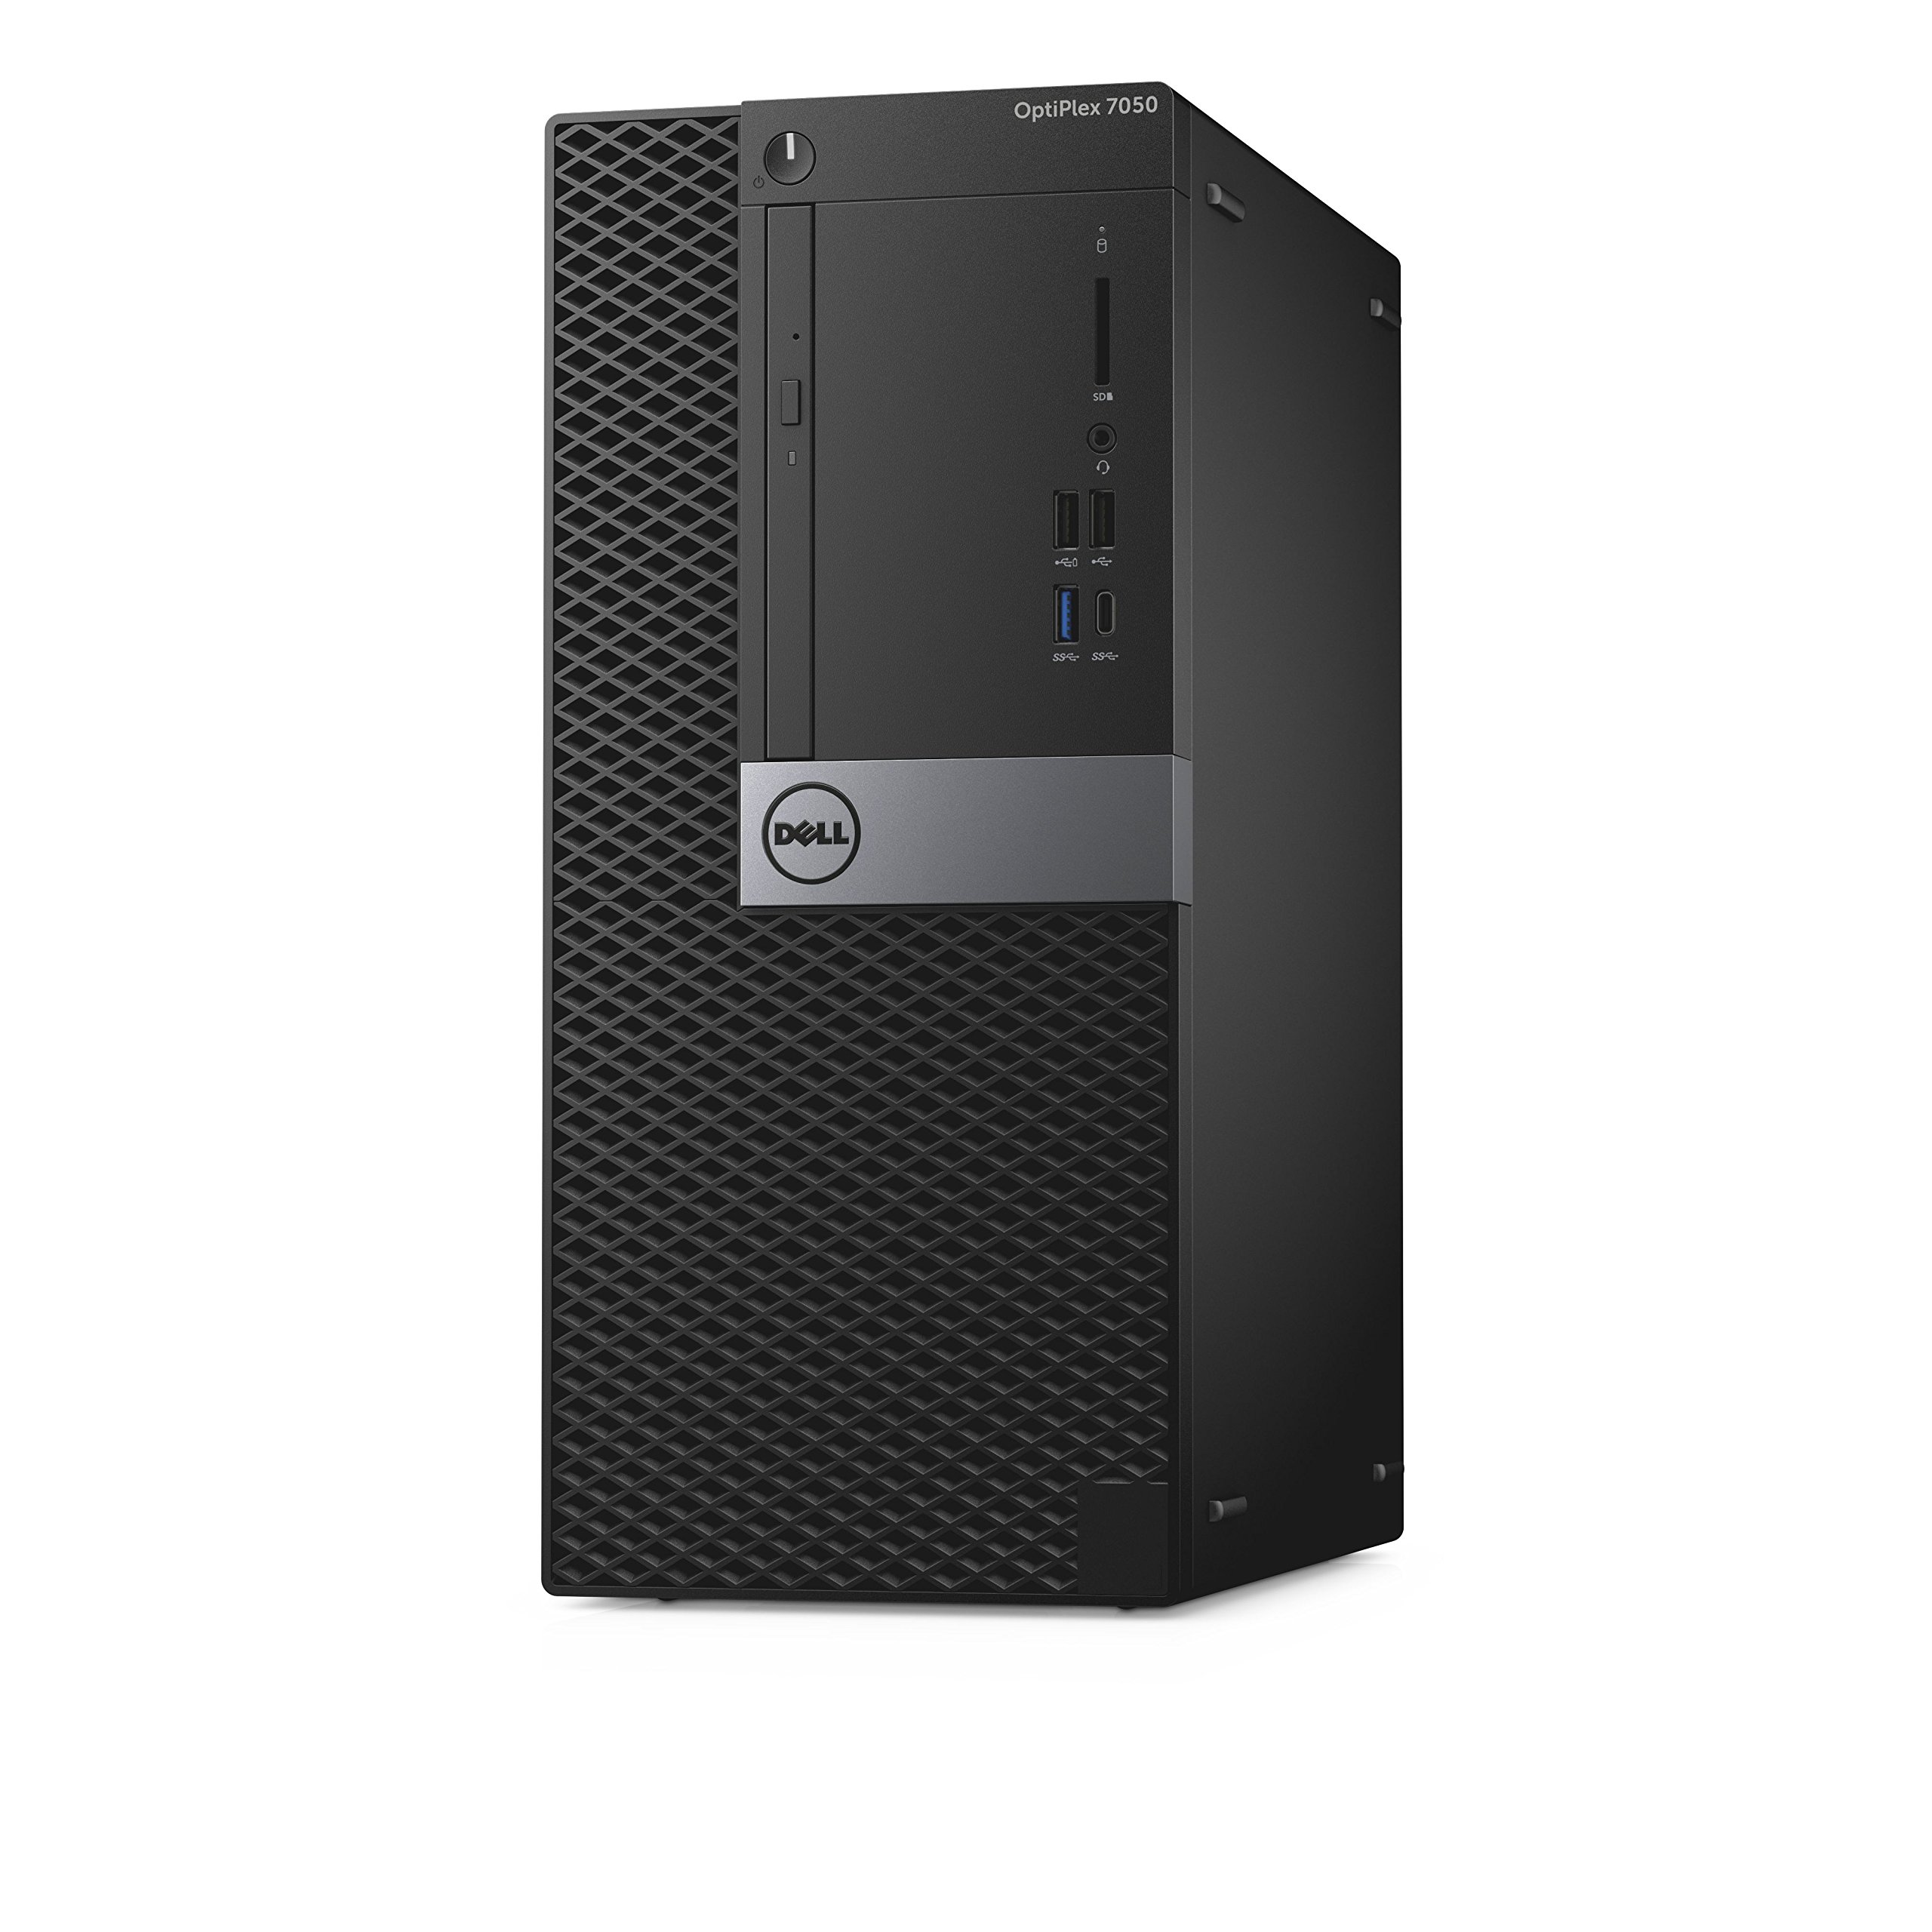 Dell OptiPlex 7050 Tower Desktop Computer, Intel Core i7-7700, 8GB DDR4, 500GB Hard Drive, Windows 10 Pro (D3HFF)